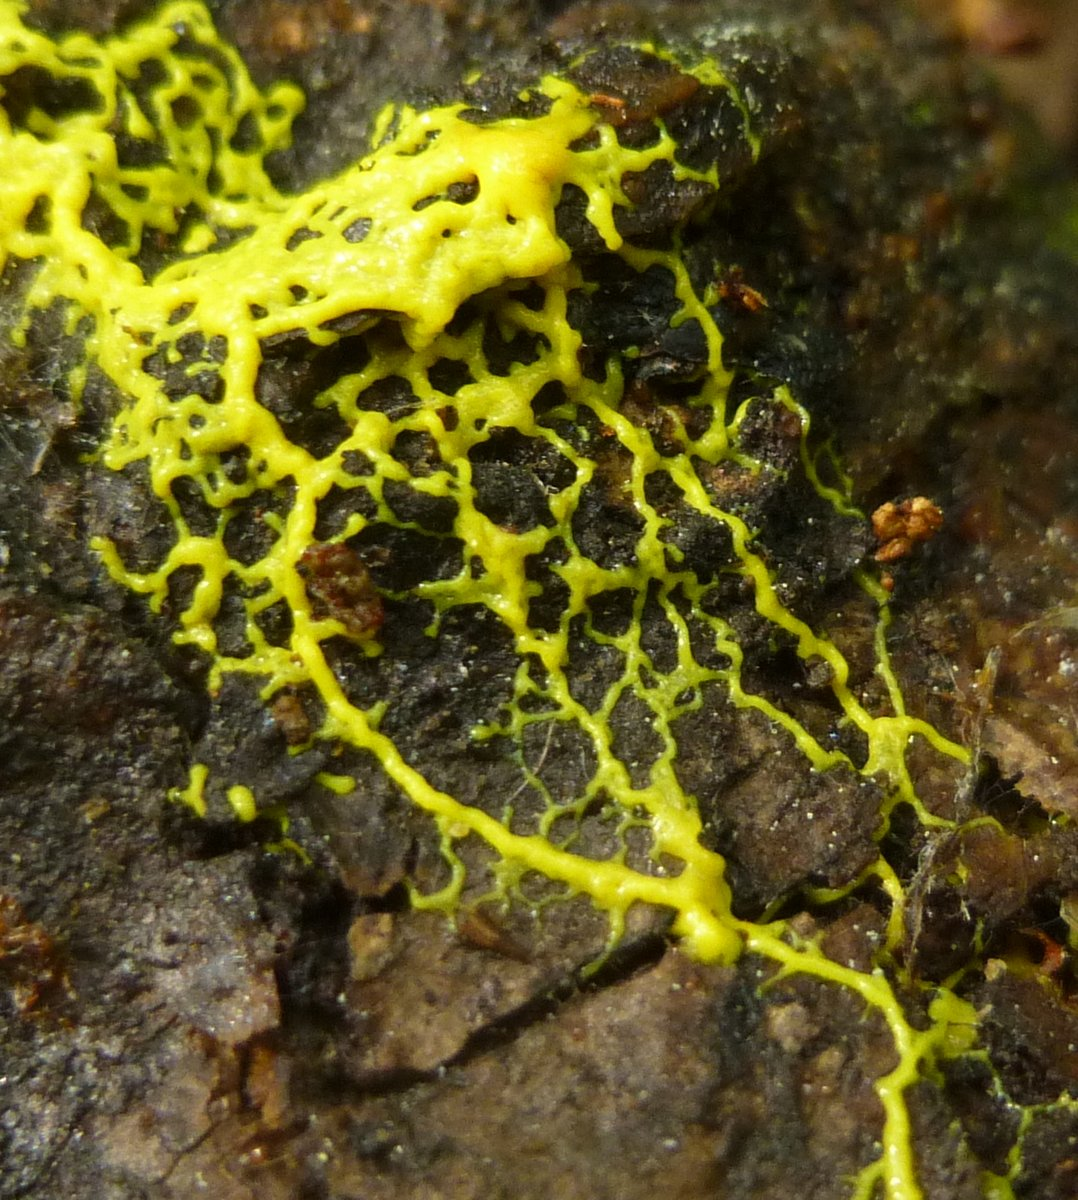 1. Yellow Slime Mold